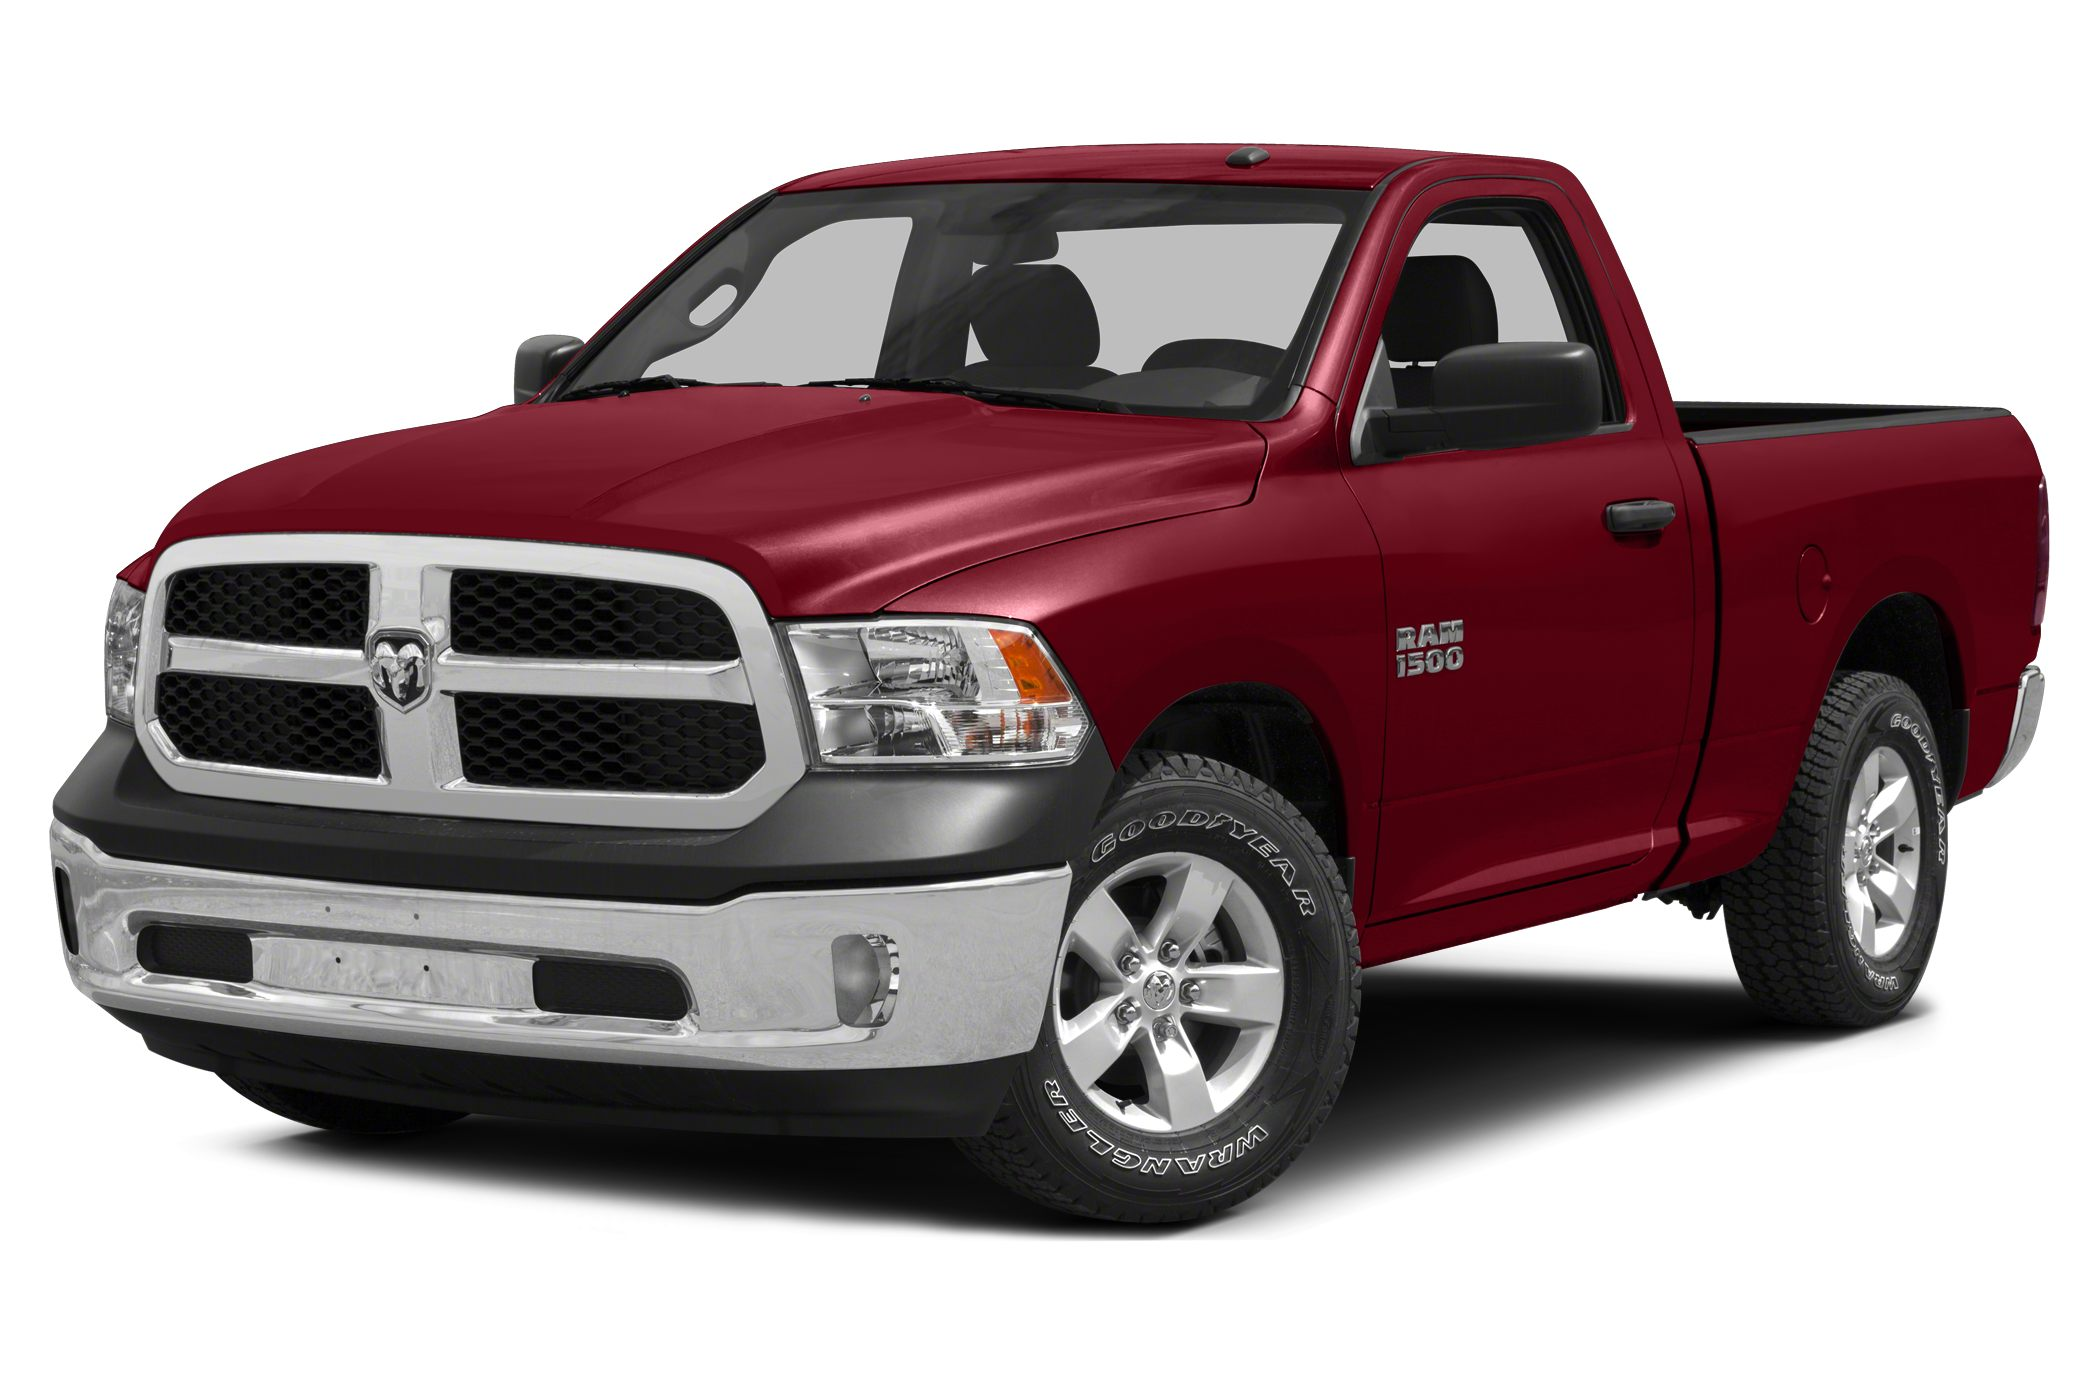 2014 RAM 1500 Tradesman/Express Crew Cab Pickup for sale in Celina for $28,929 with 21,020 miles.